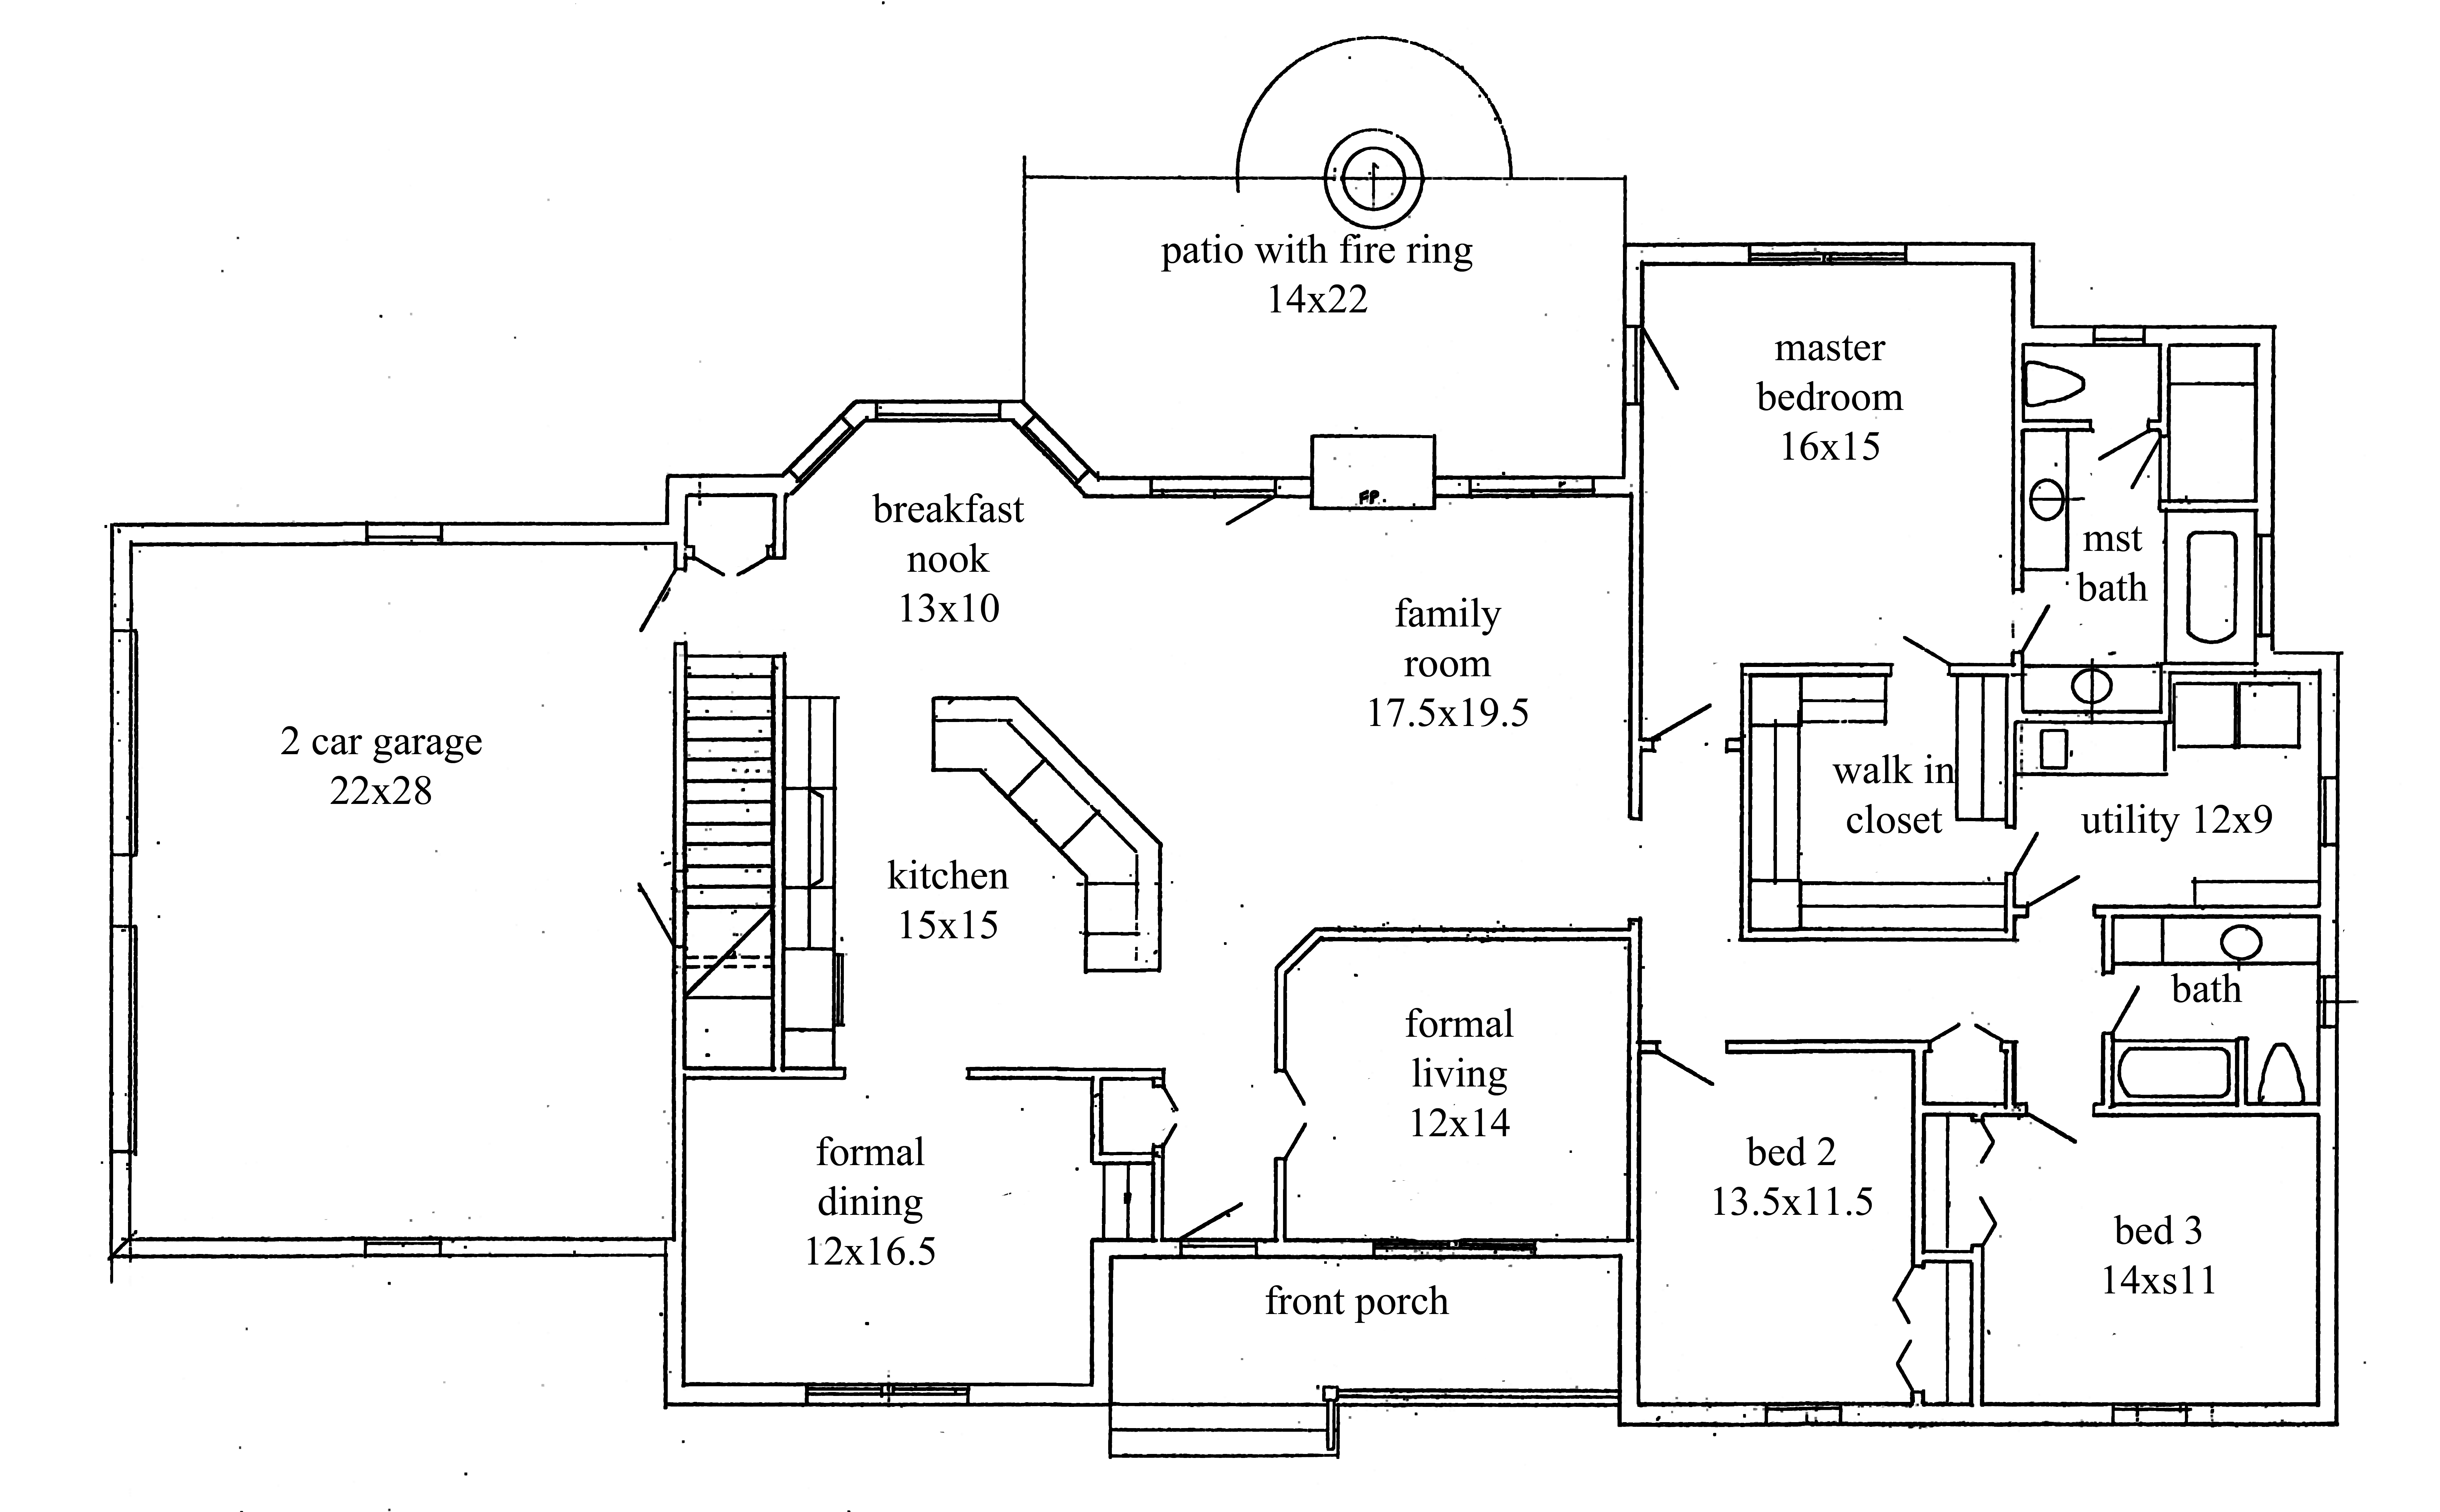 House plans new construction home floor plan for New home blueprints photos